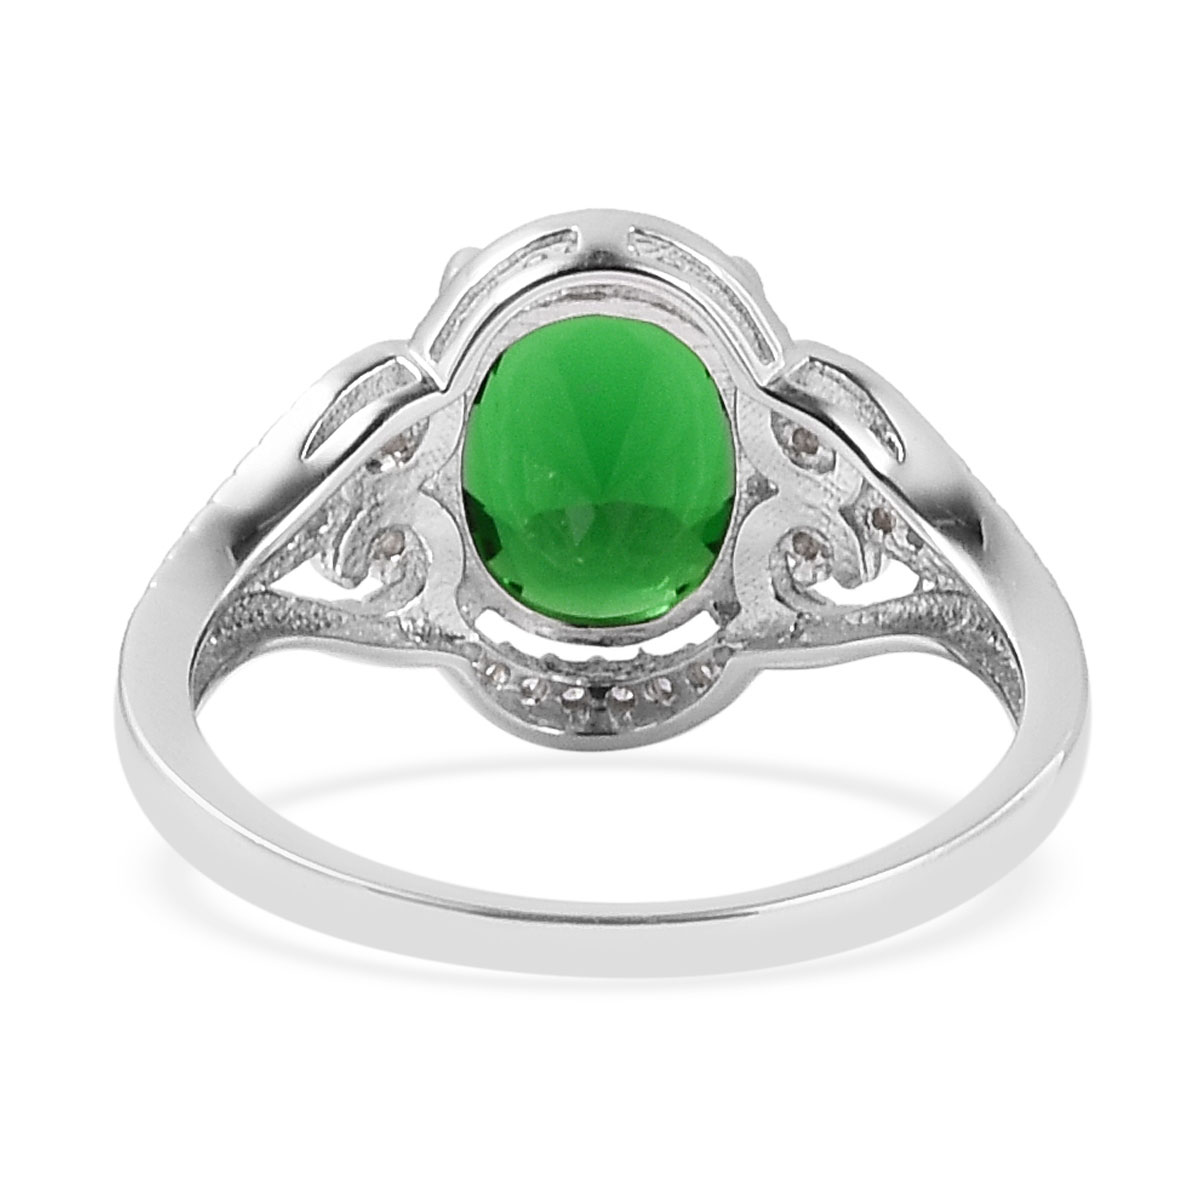 Simulated Emerald, White CZ Sterling Silver Ring (Size 7.0) 2.85 ctw